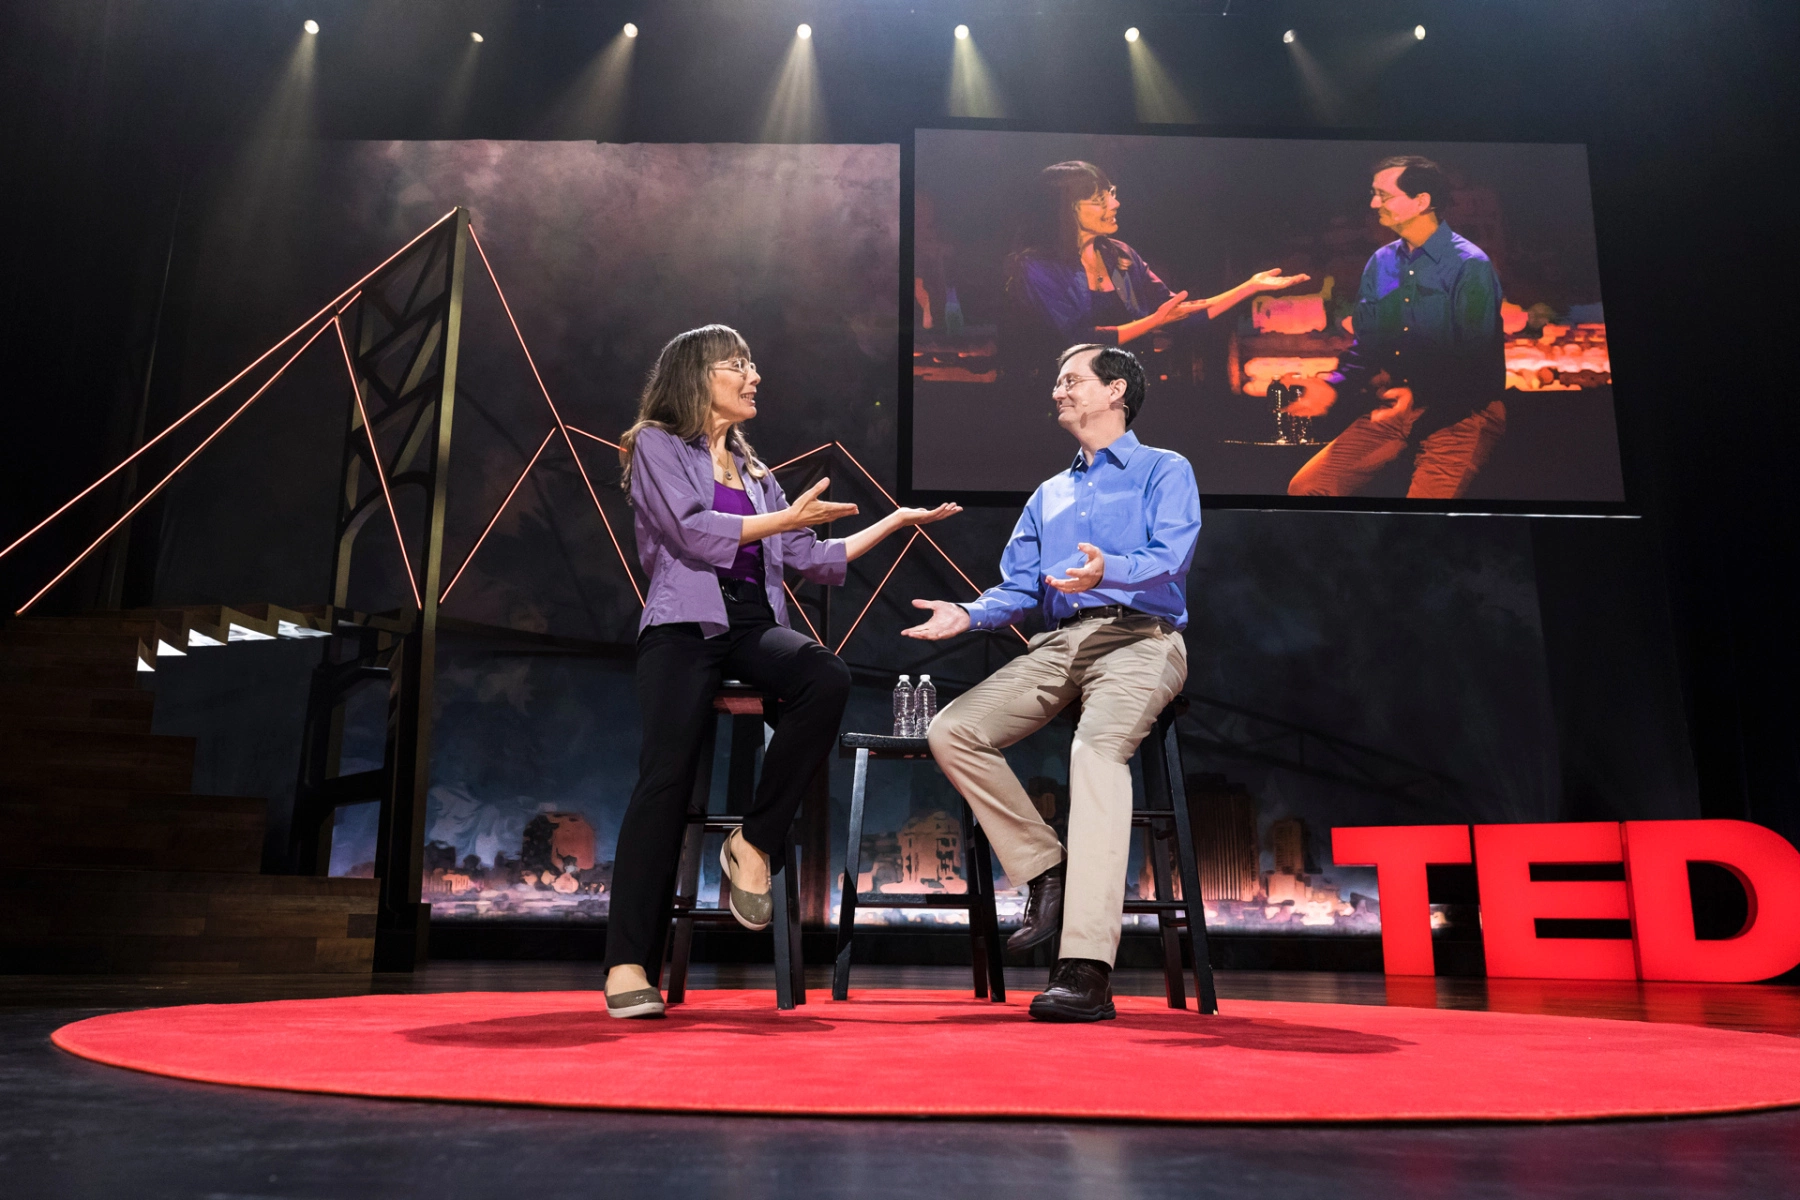 Joan Blades and John Gable talk about filter bubbles and bridging divides through civil discourse at TEDWomen 2017 in New Orleans, Louisiana